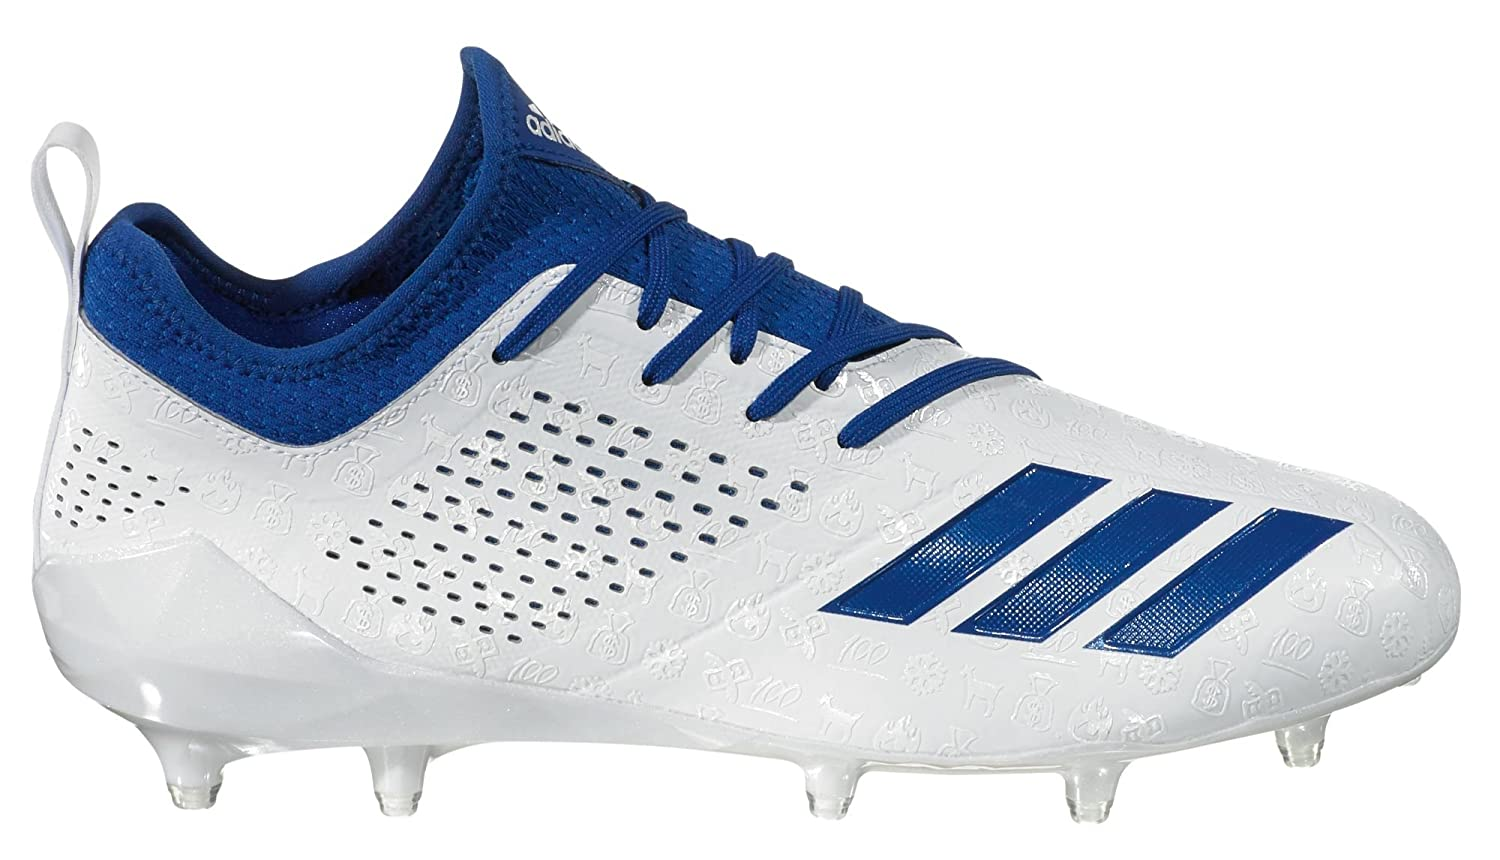 White bluee adidas Men's Adizero 5-Star 7.0 adiMoji Pack Football Cleats